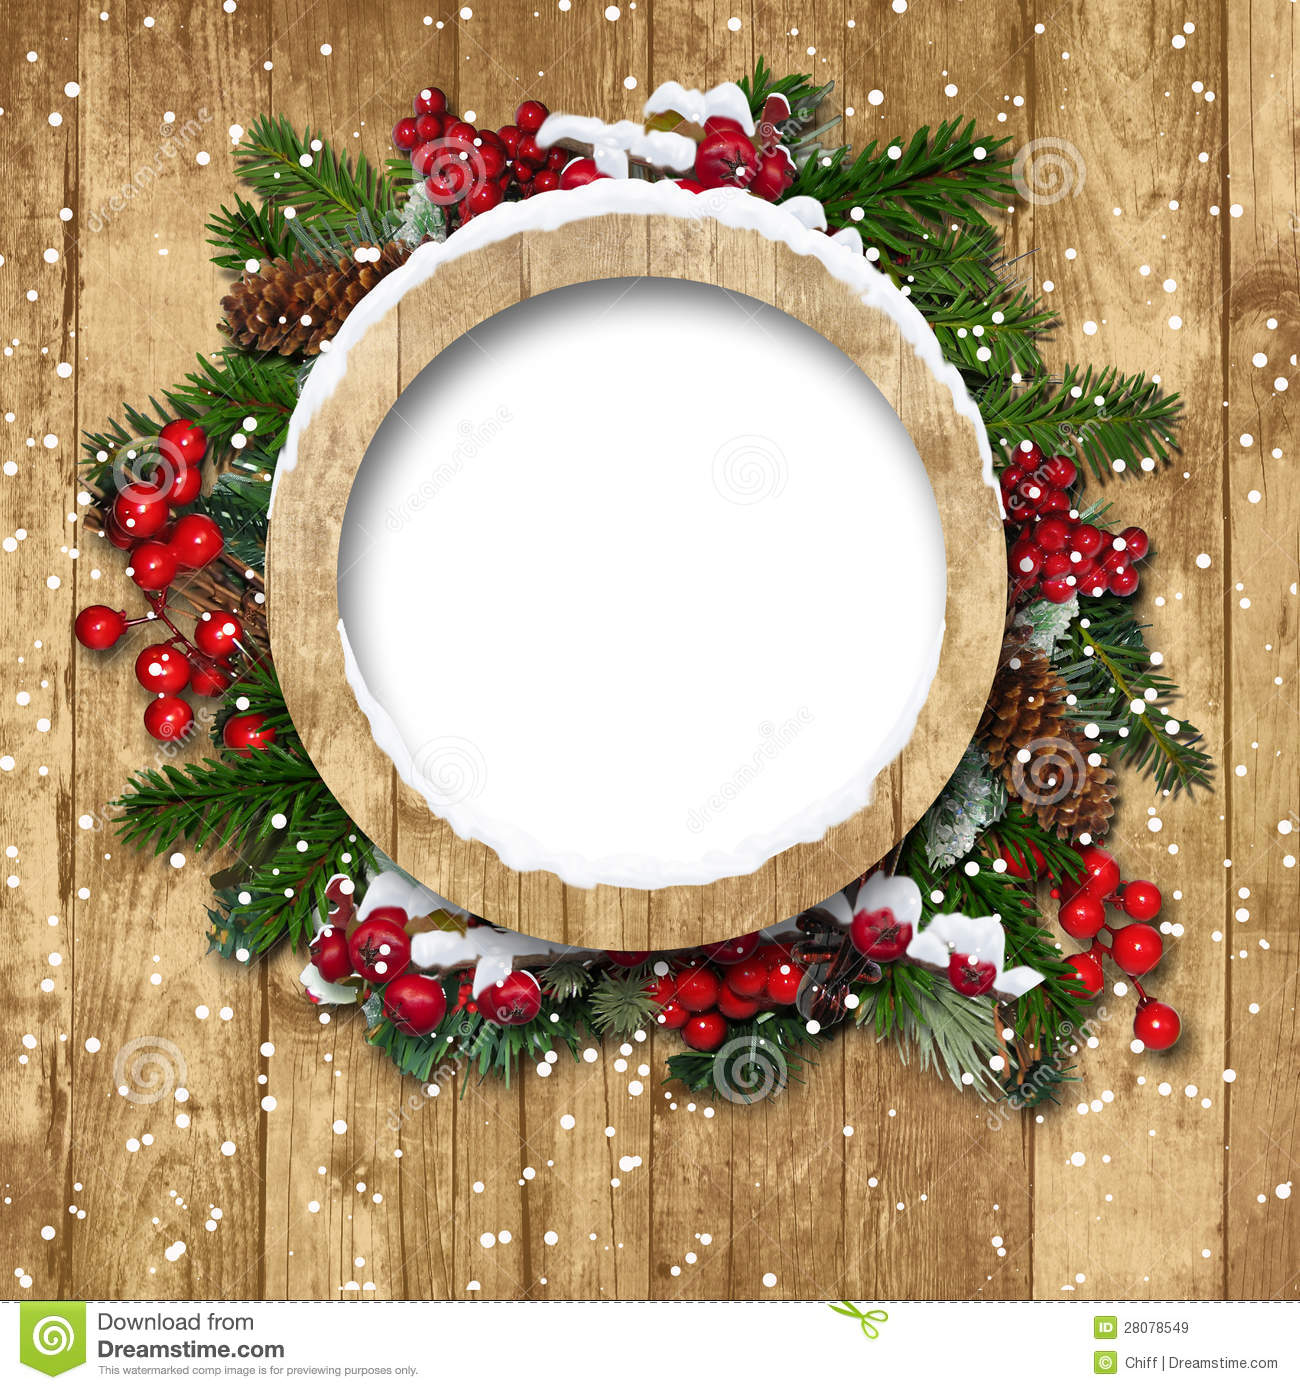 Christmas Frame With Decorations On A Wooden Stock Image